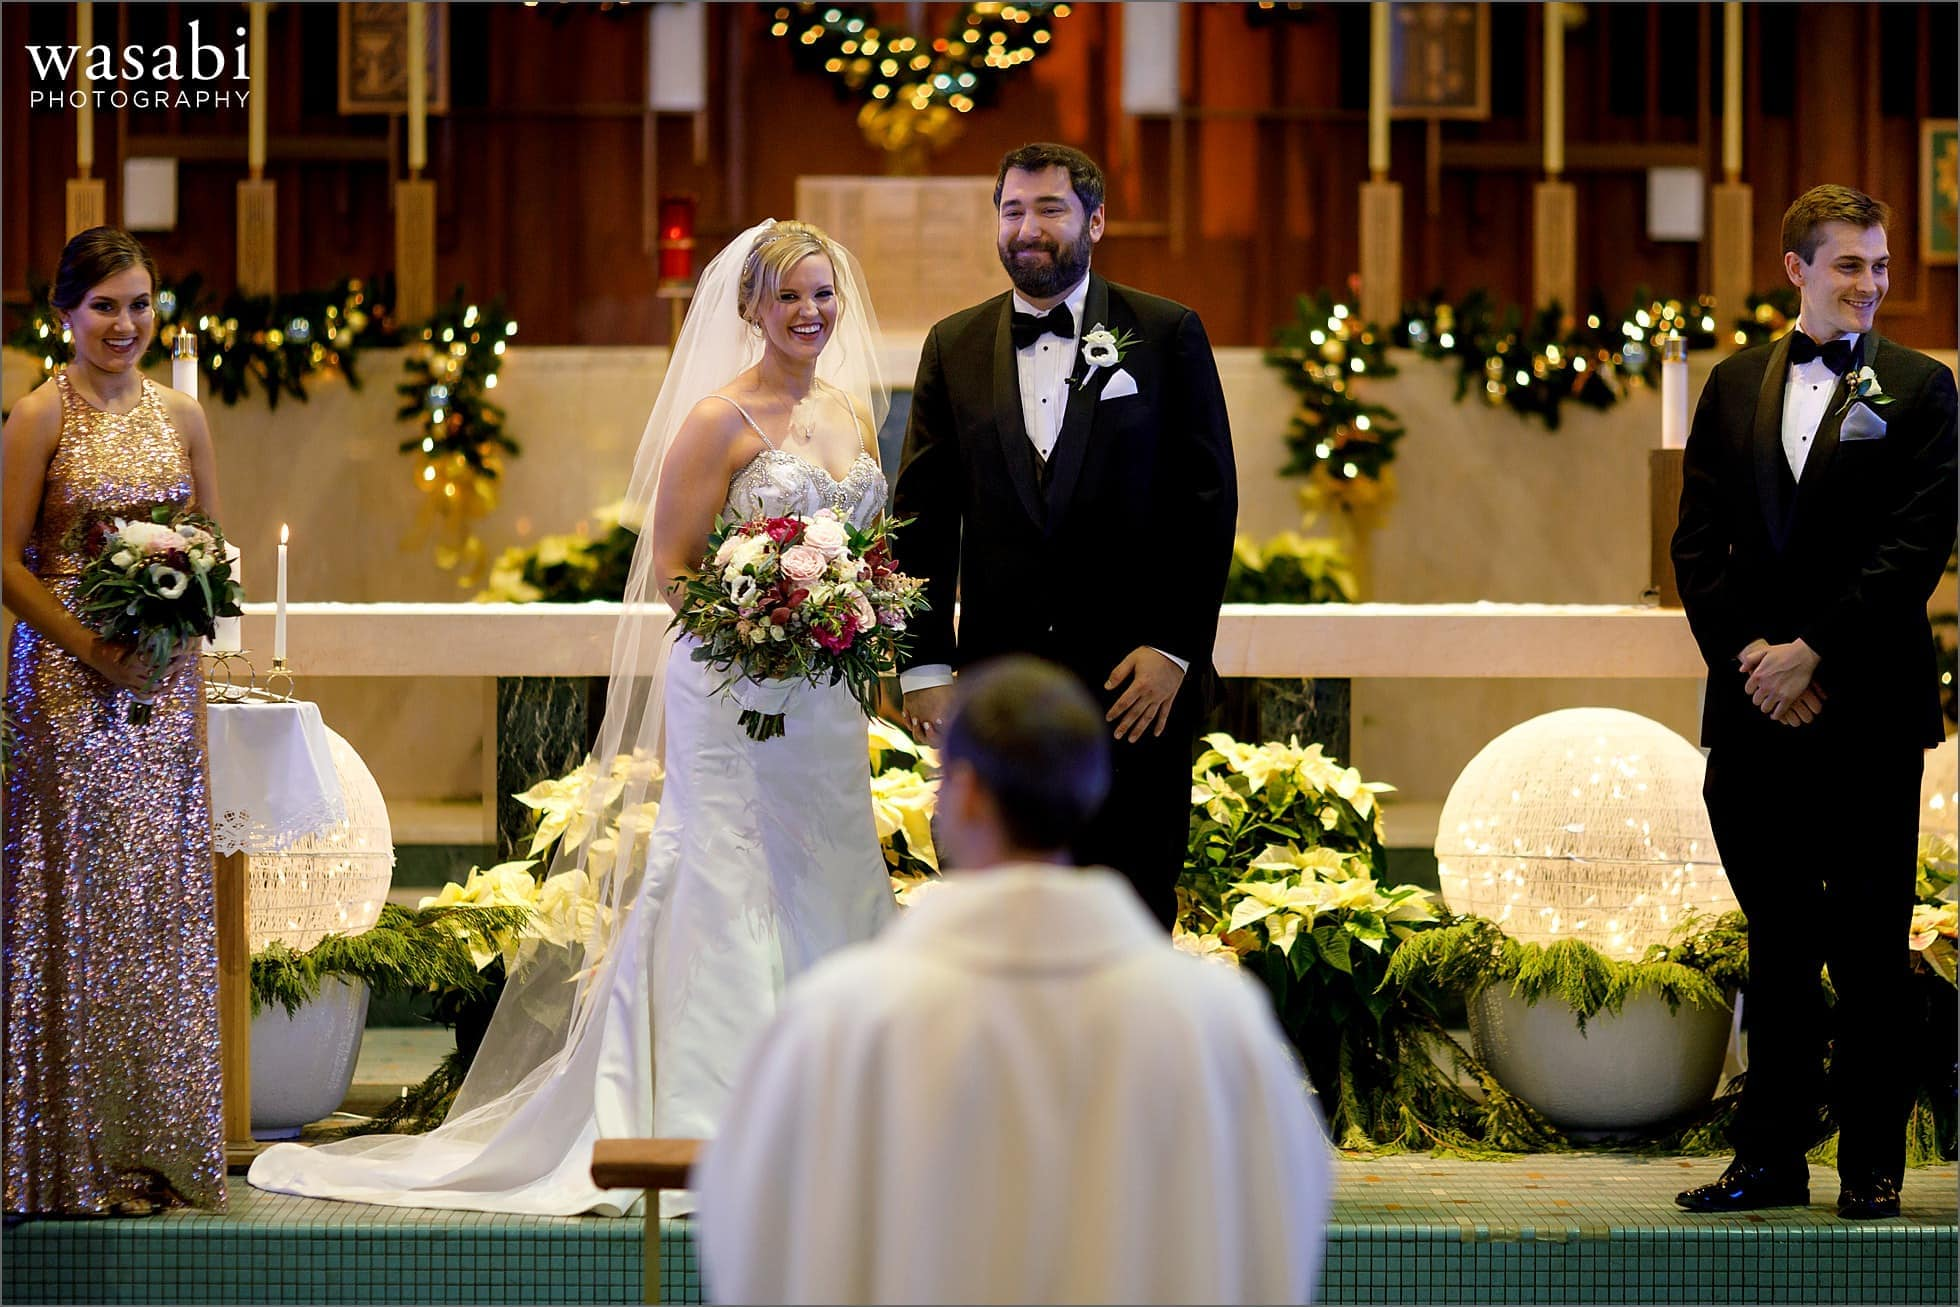 bride and groom smile during wedding ceremony at Immaculate Conception Catholic Church in Chicago